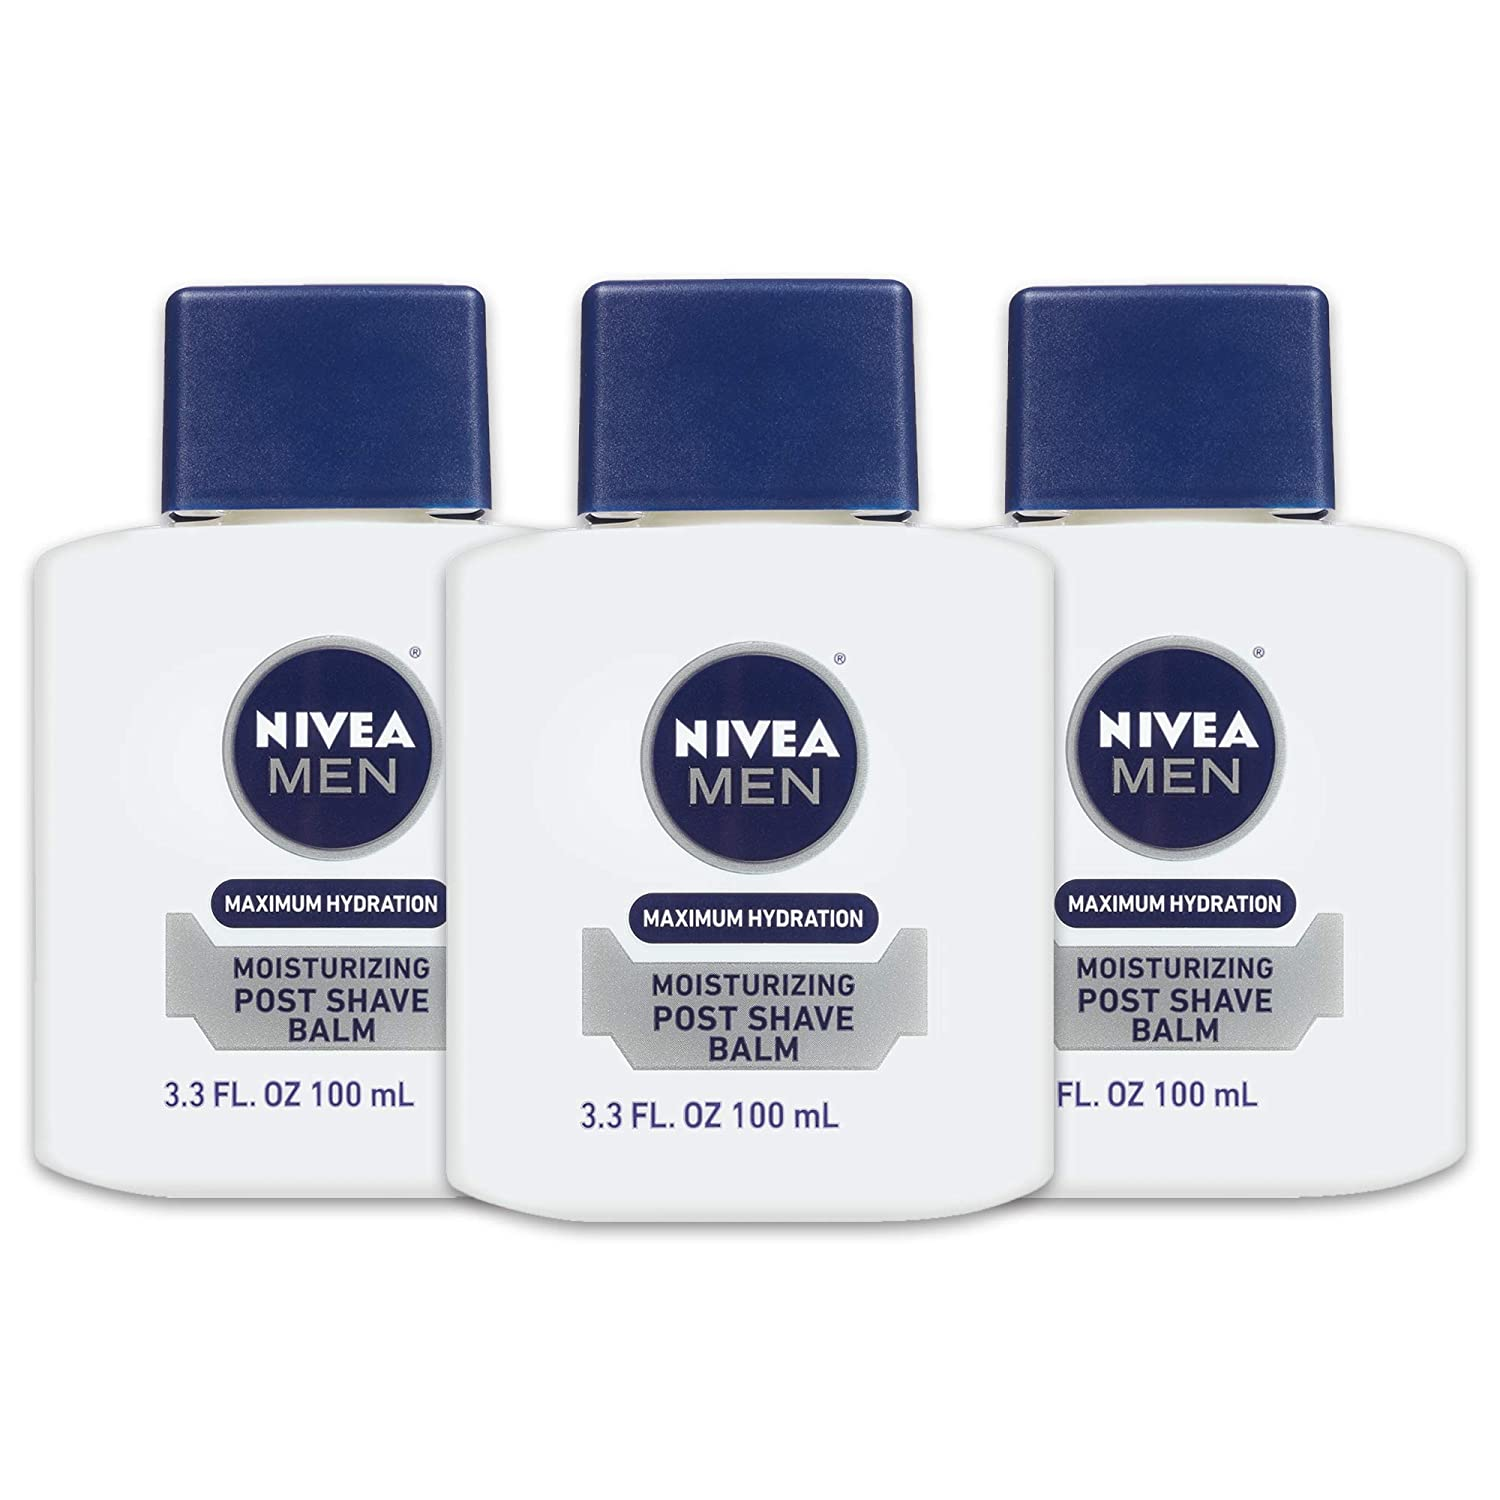 NIVEA Men Maximum Hydration Moisturizing Post Shave Balm - No Greasy Feel - 3.3 fl. oz Bottle (Pack of 3)